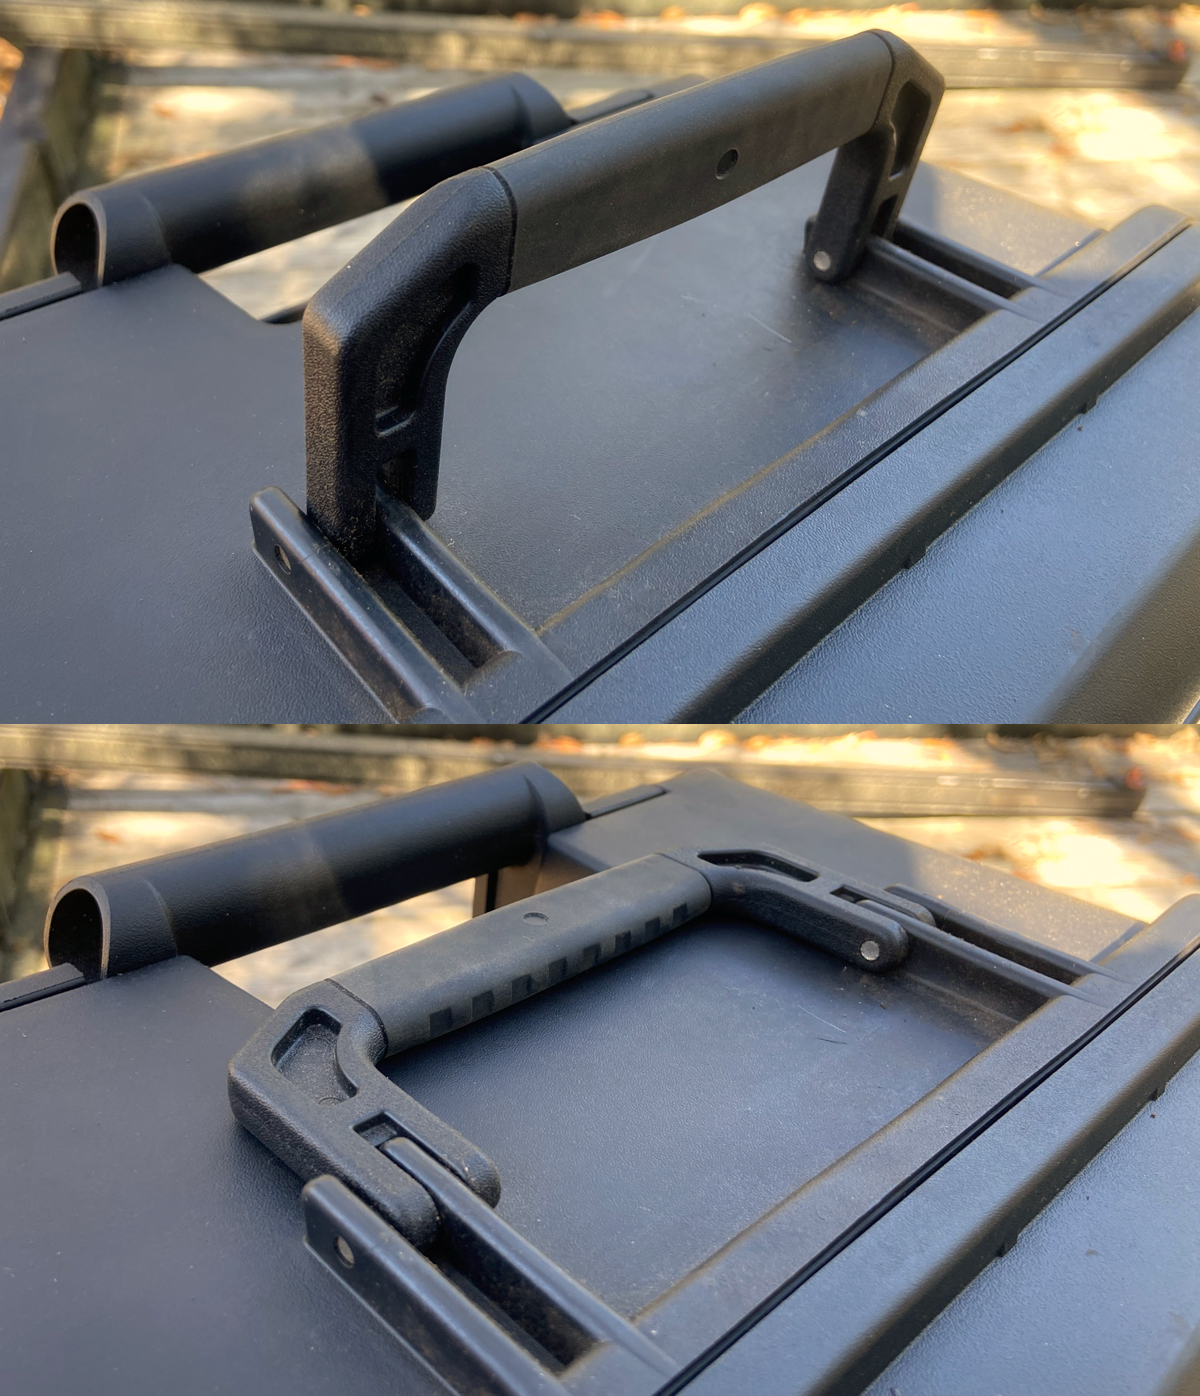 Rubberized folding handle on end folds flat (Photo © Russ Chastain)